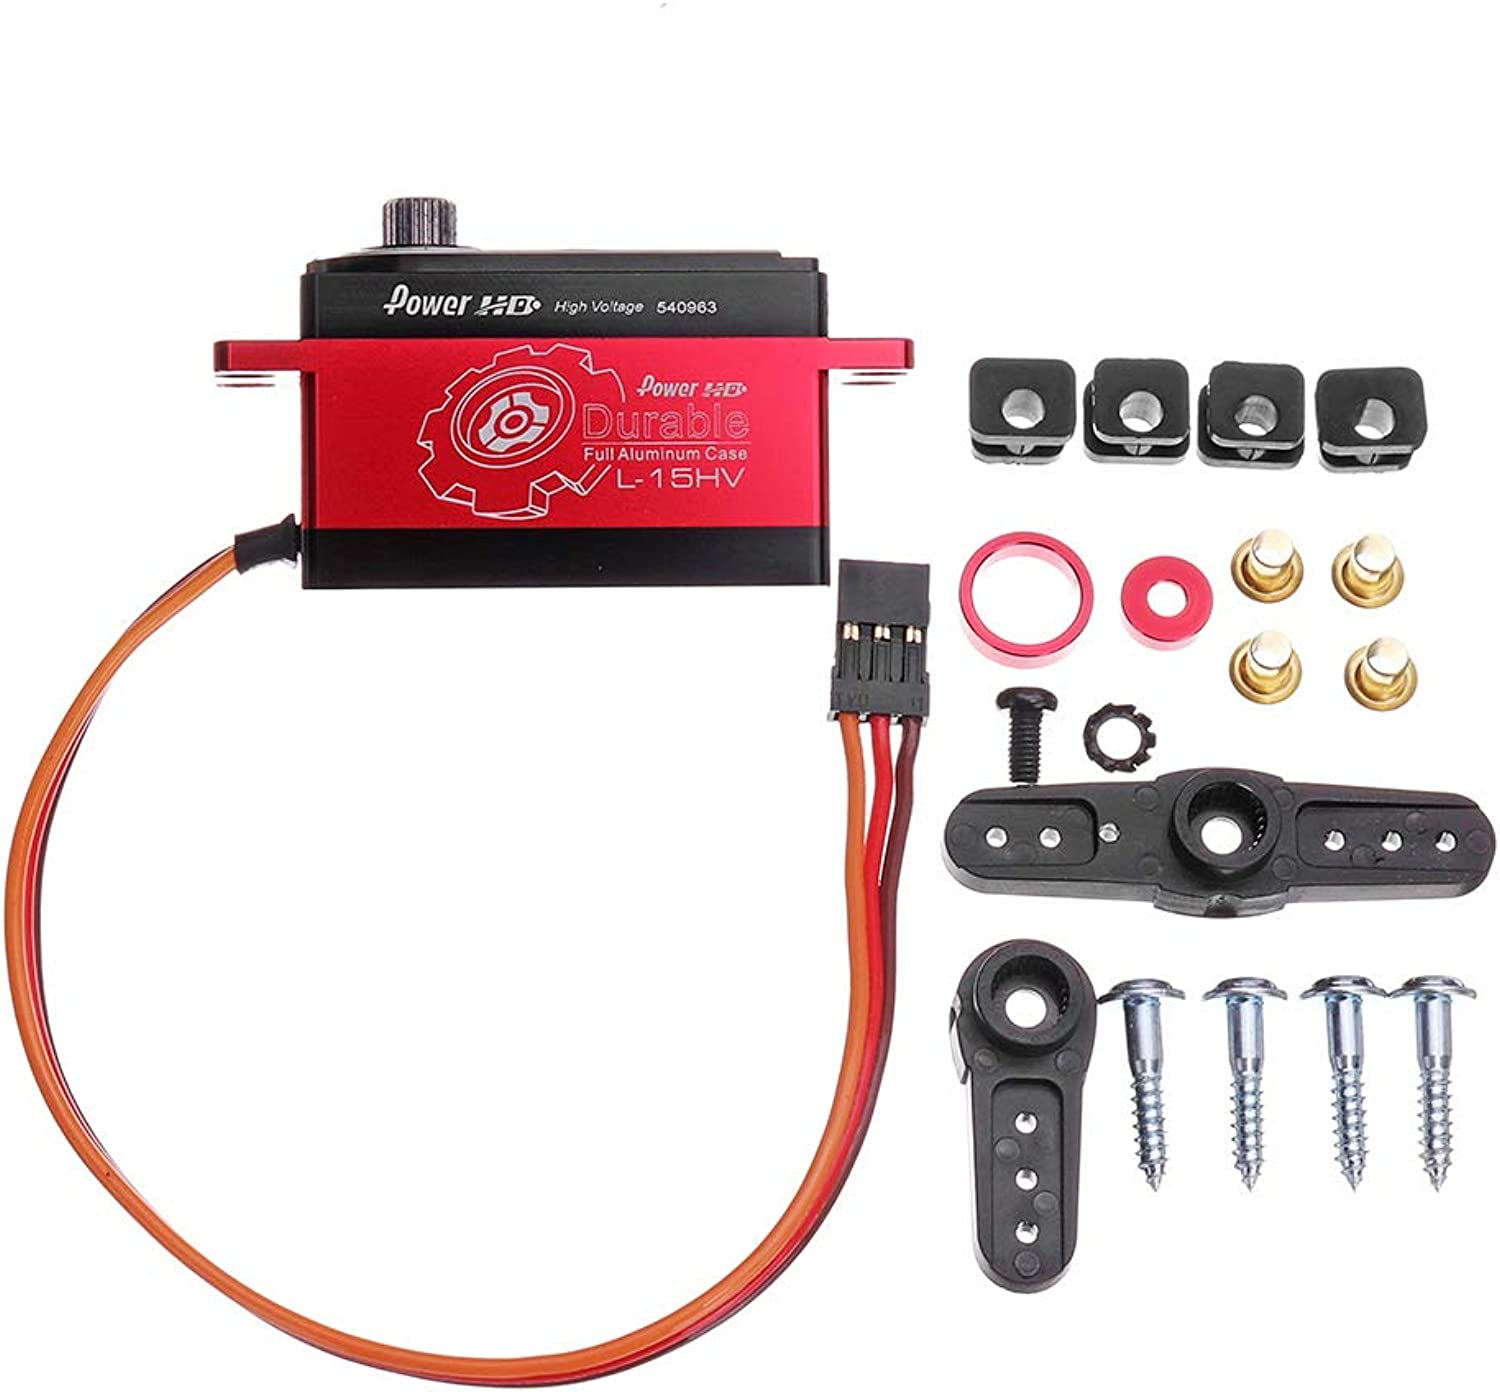 protección post-venta LaDicha Power HD L-15Hv Servo Servo Servo Digital De Metal para 1 10 Racing On-Road Off-Road RC Coche  ventas calientes